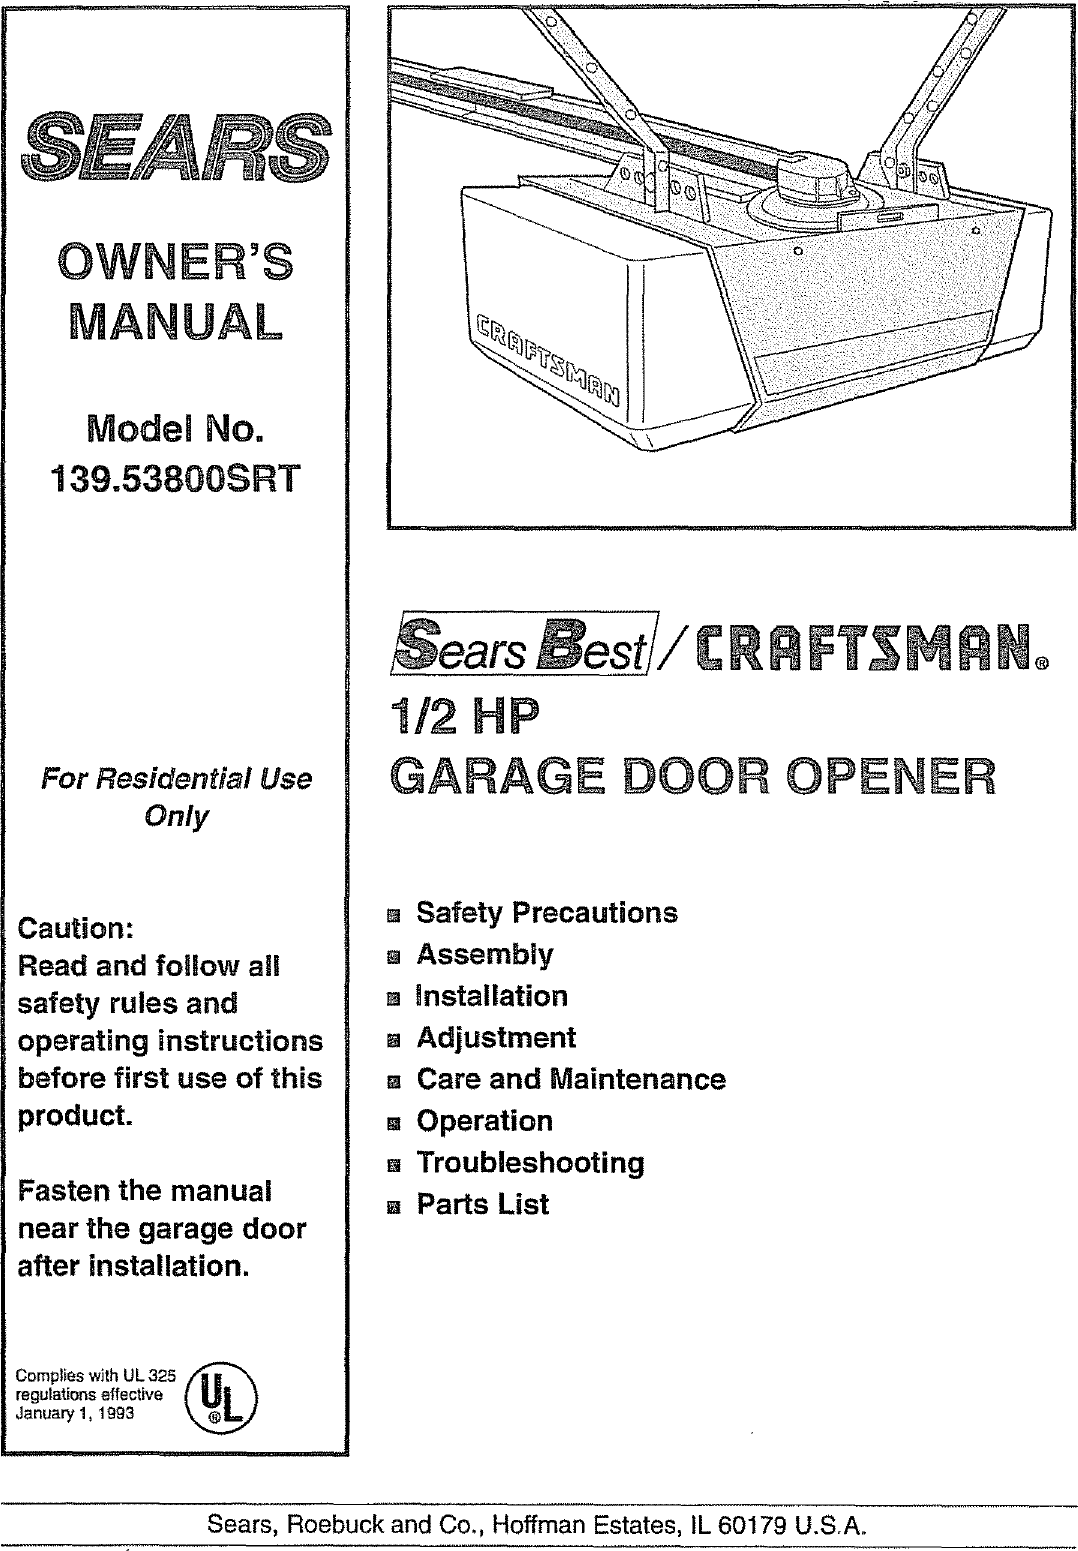 Craftsman 13953800srt User Manual 1 2 Hp Garage Door Opener Manuals And Guides L0804477